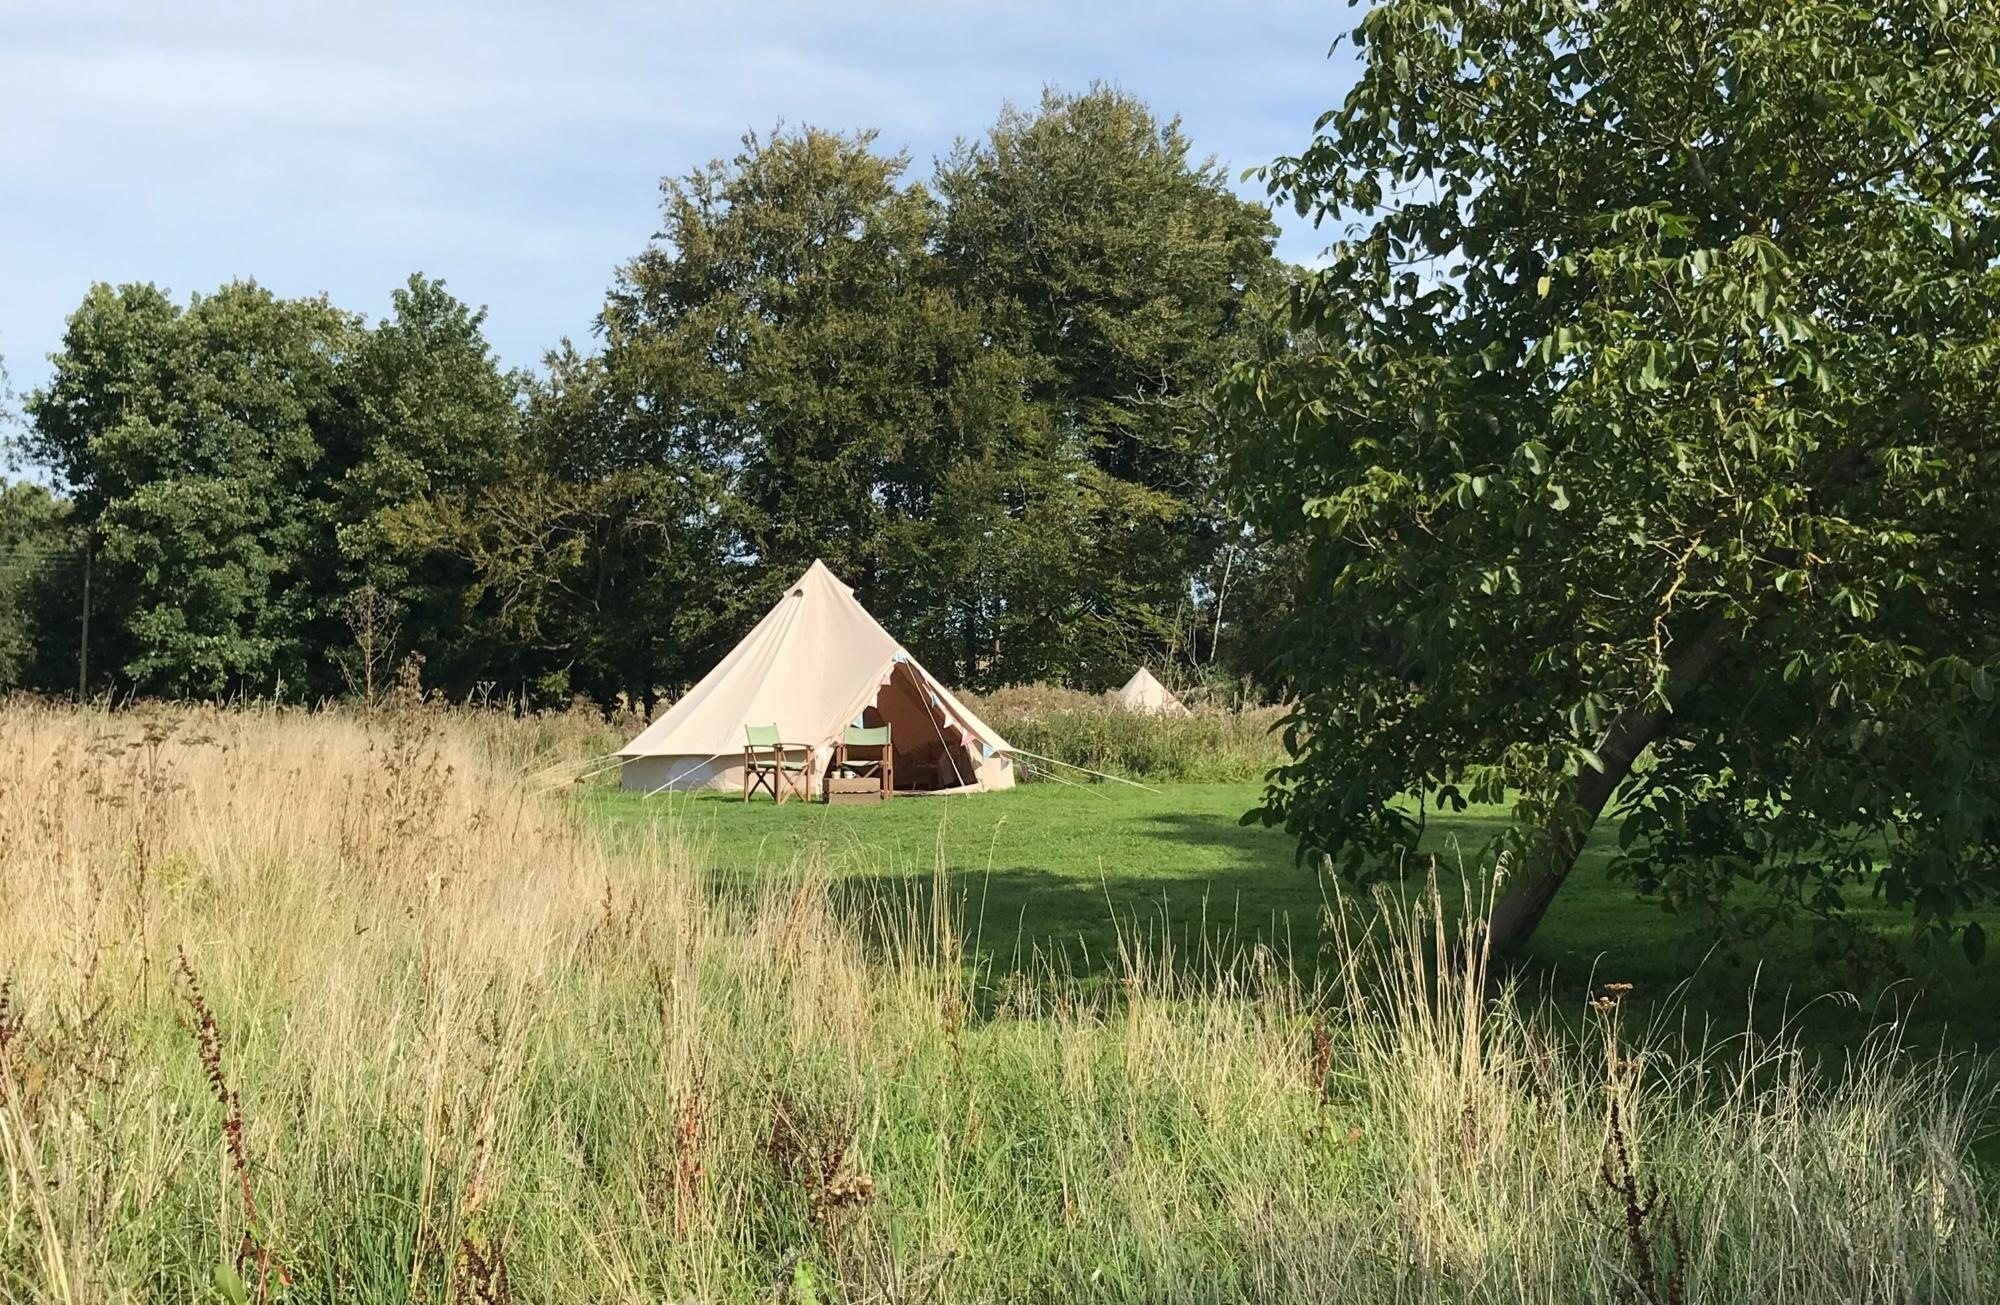 Glamping in East Anglia – I Love This Campsite